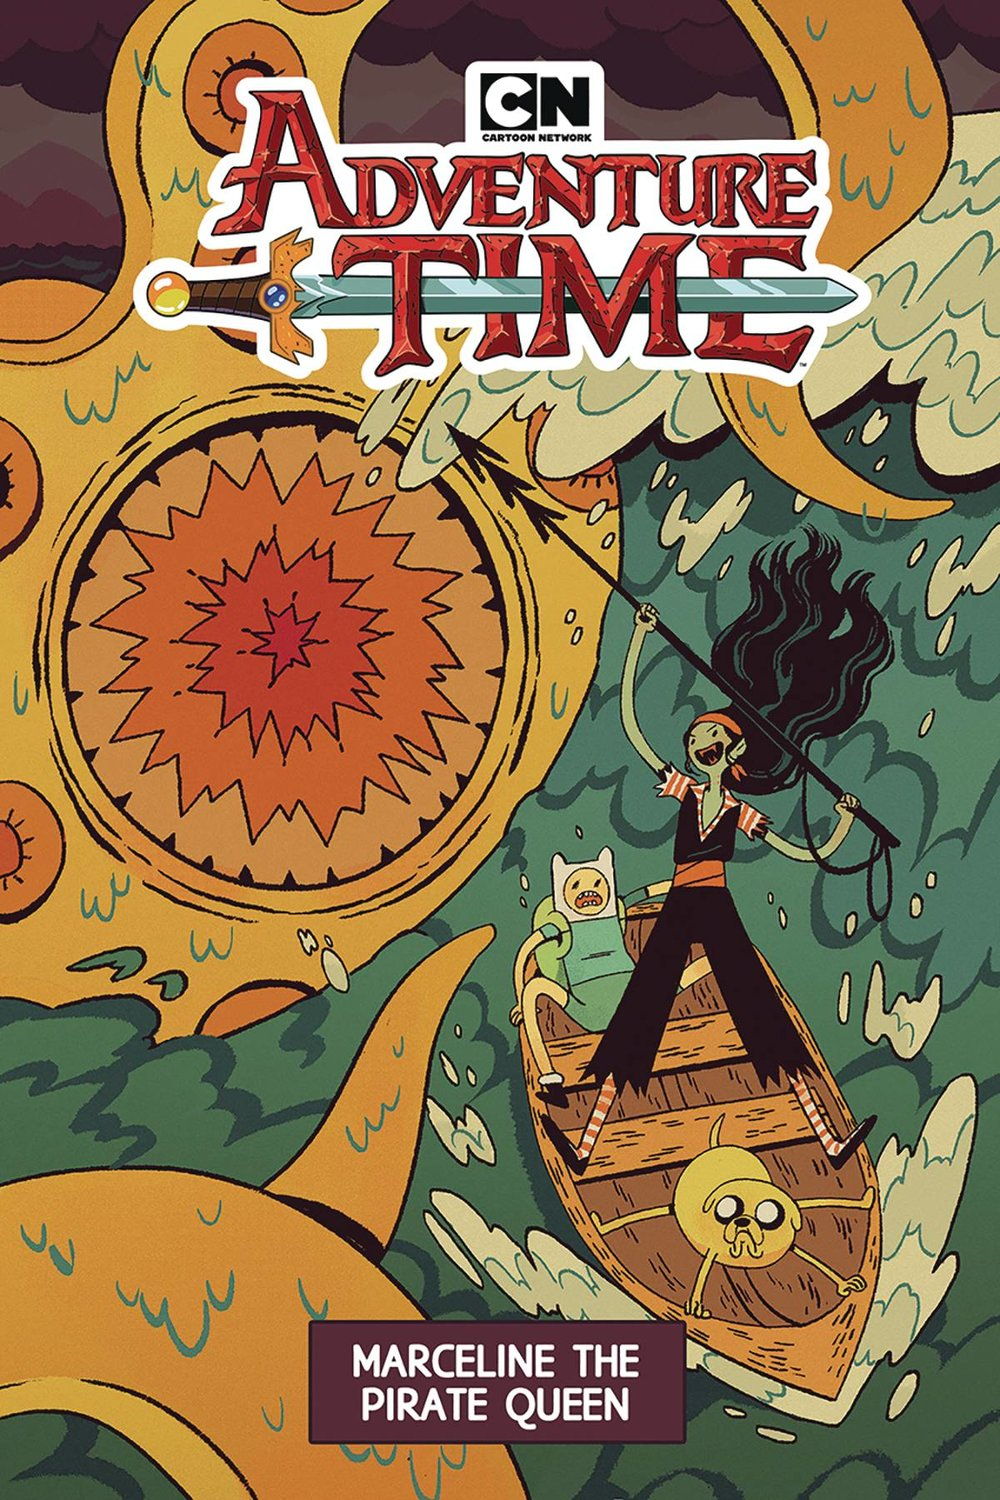 ADVENTURE TIME MARCELINE PIRATE QUEEN ORIGINAL GN